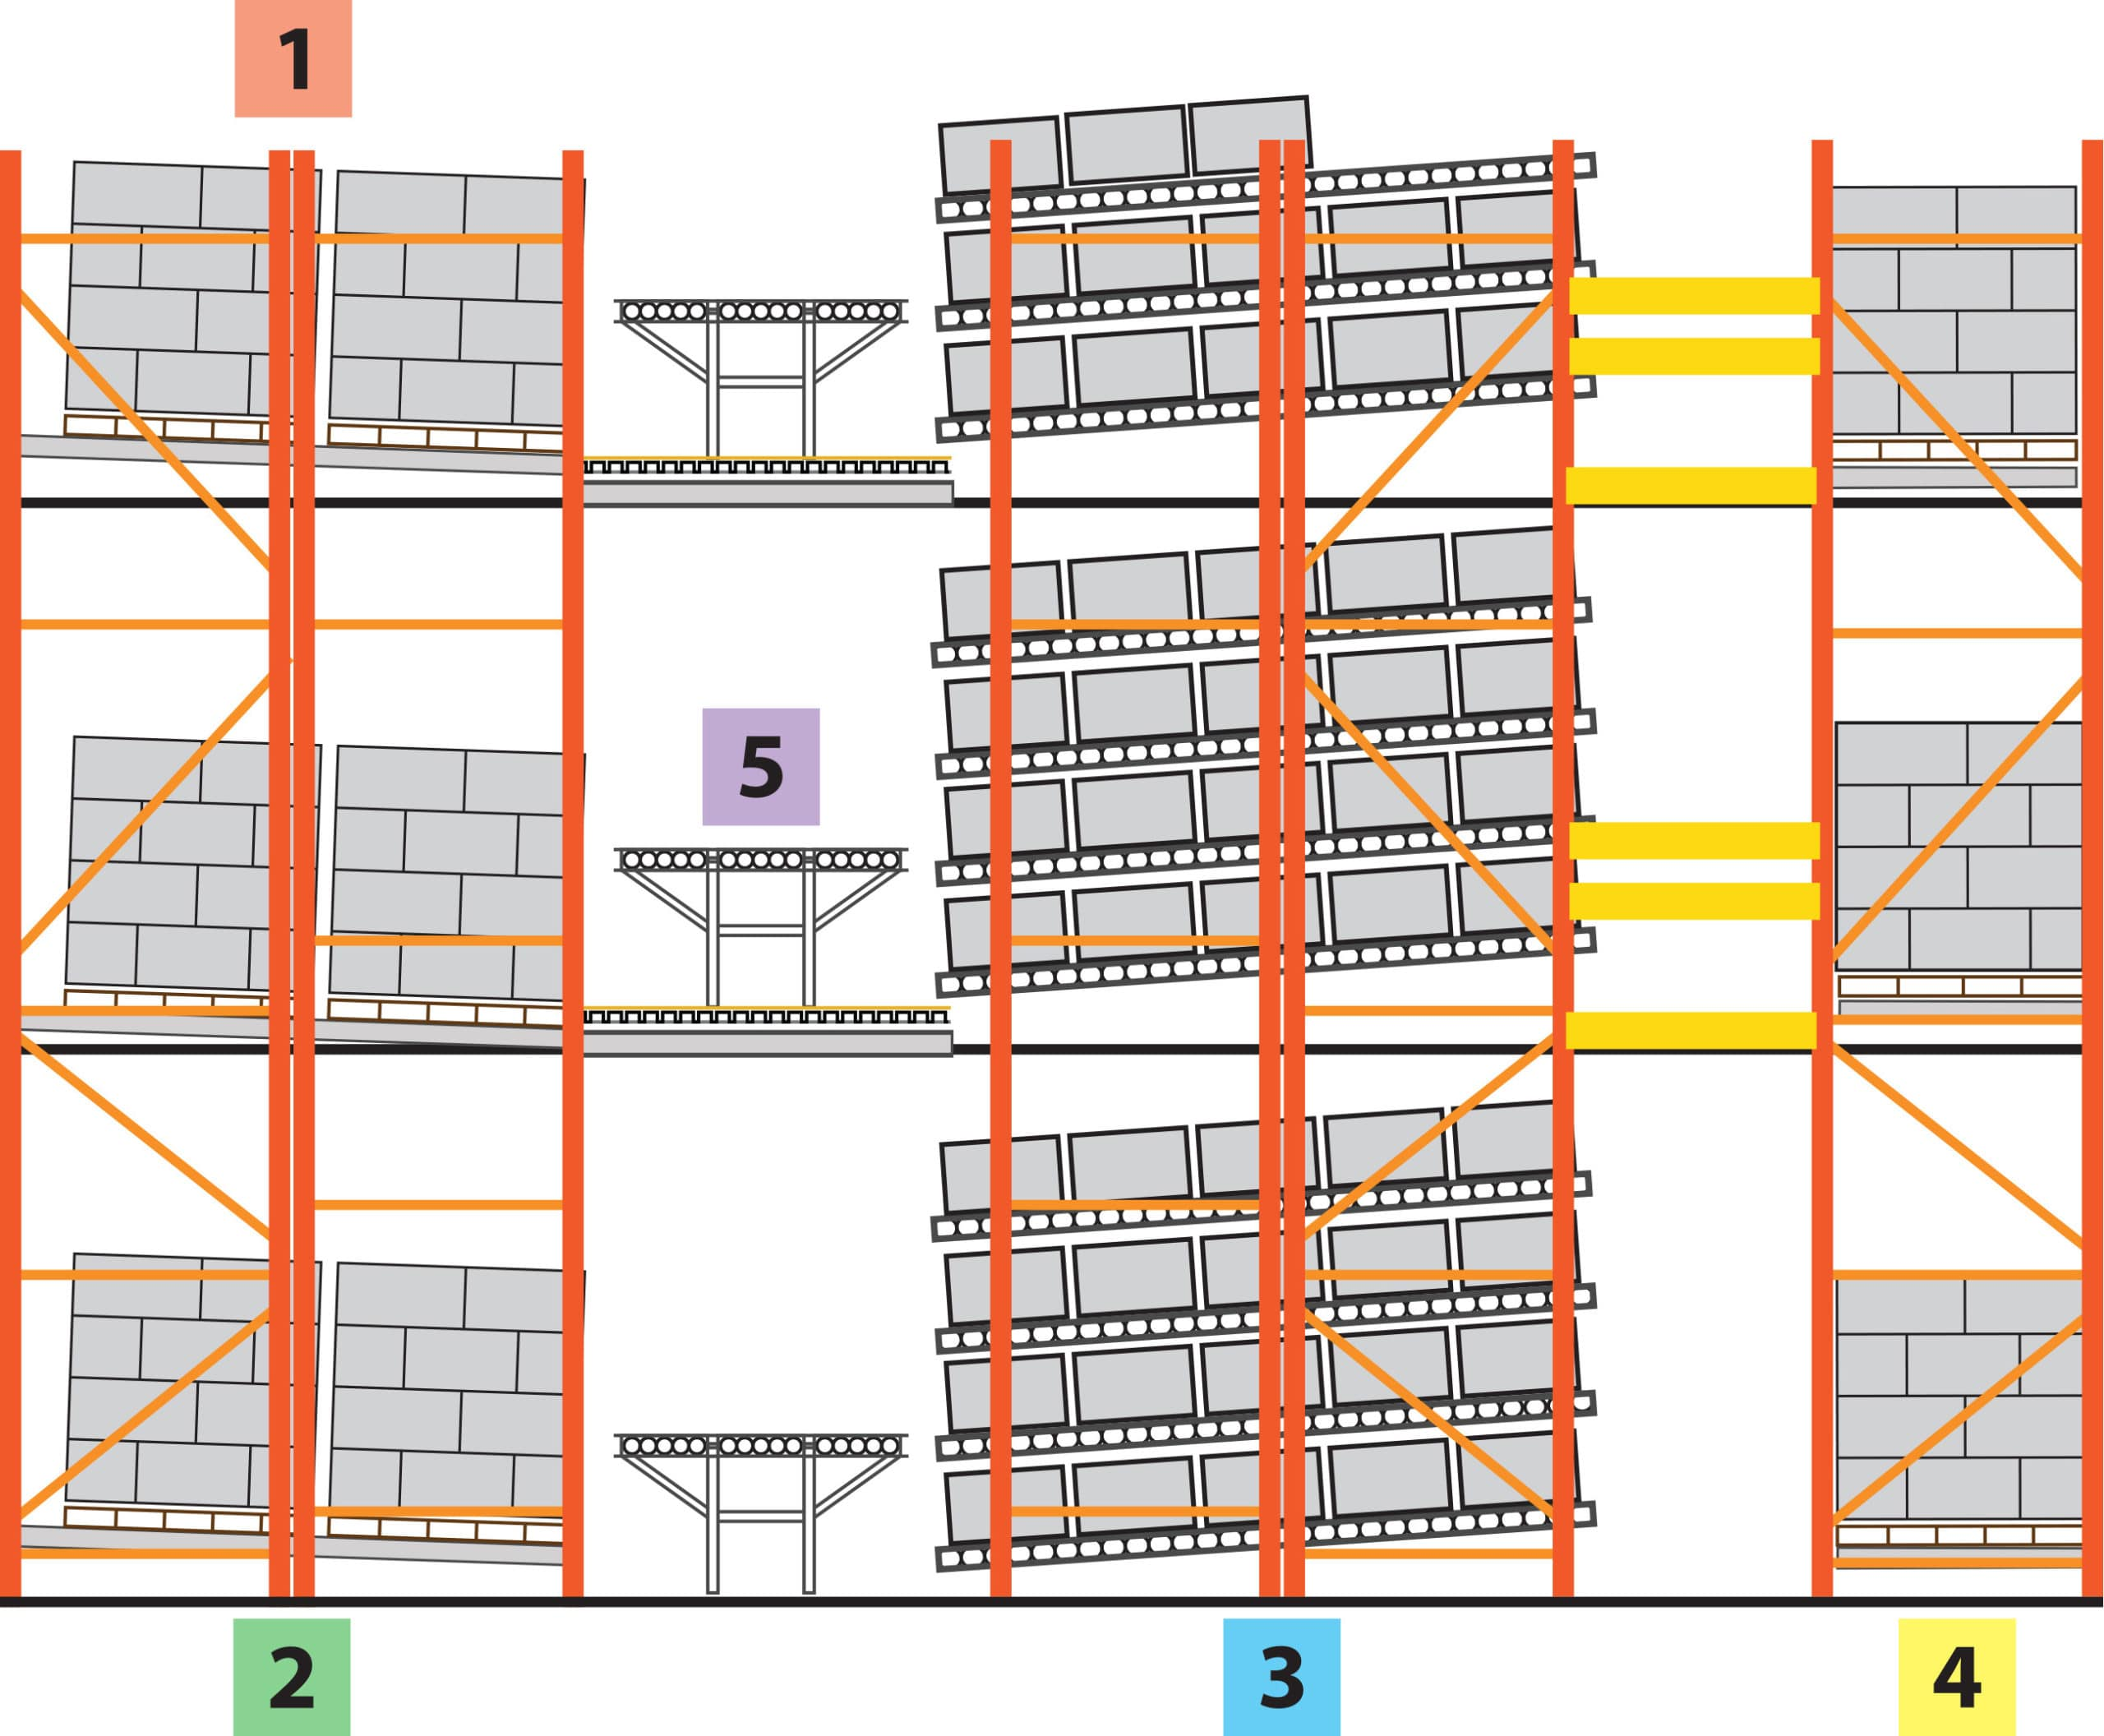 Pick Module Layout 2